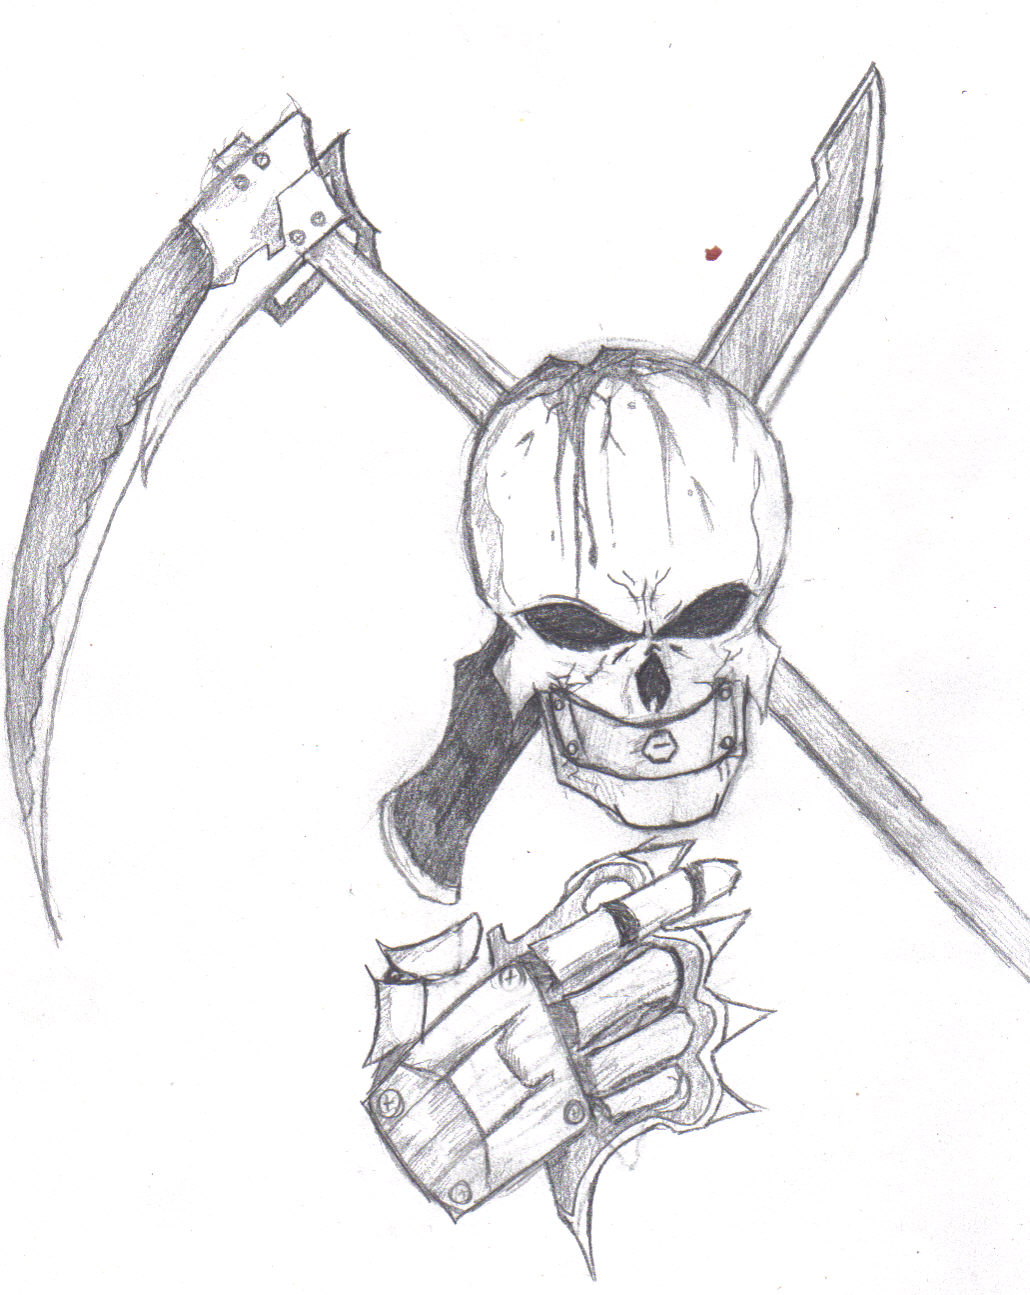 The Weapon Skull!